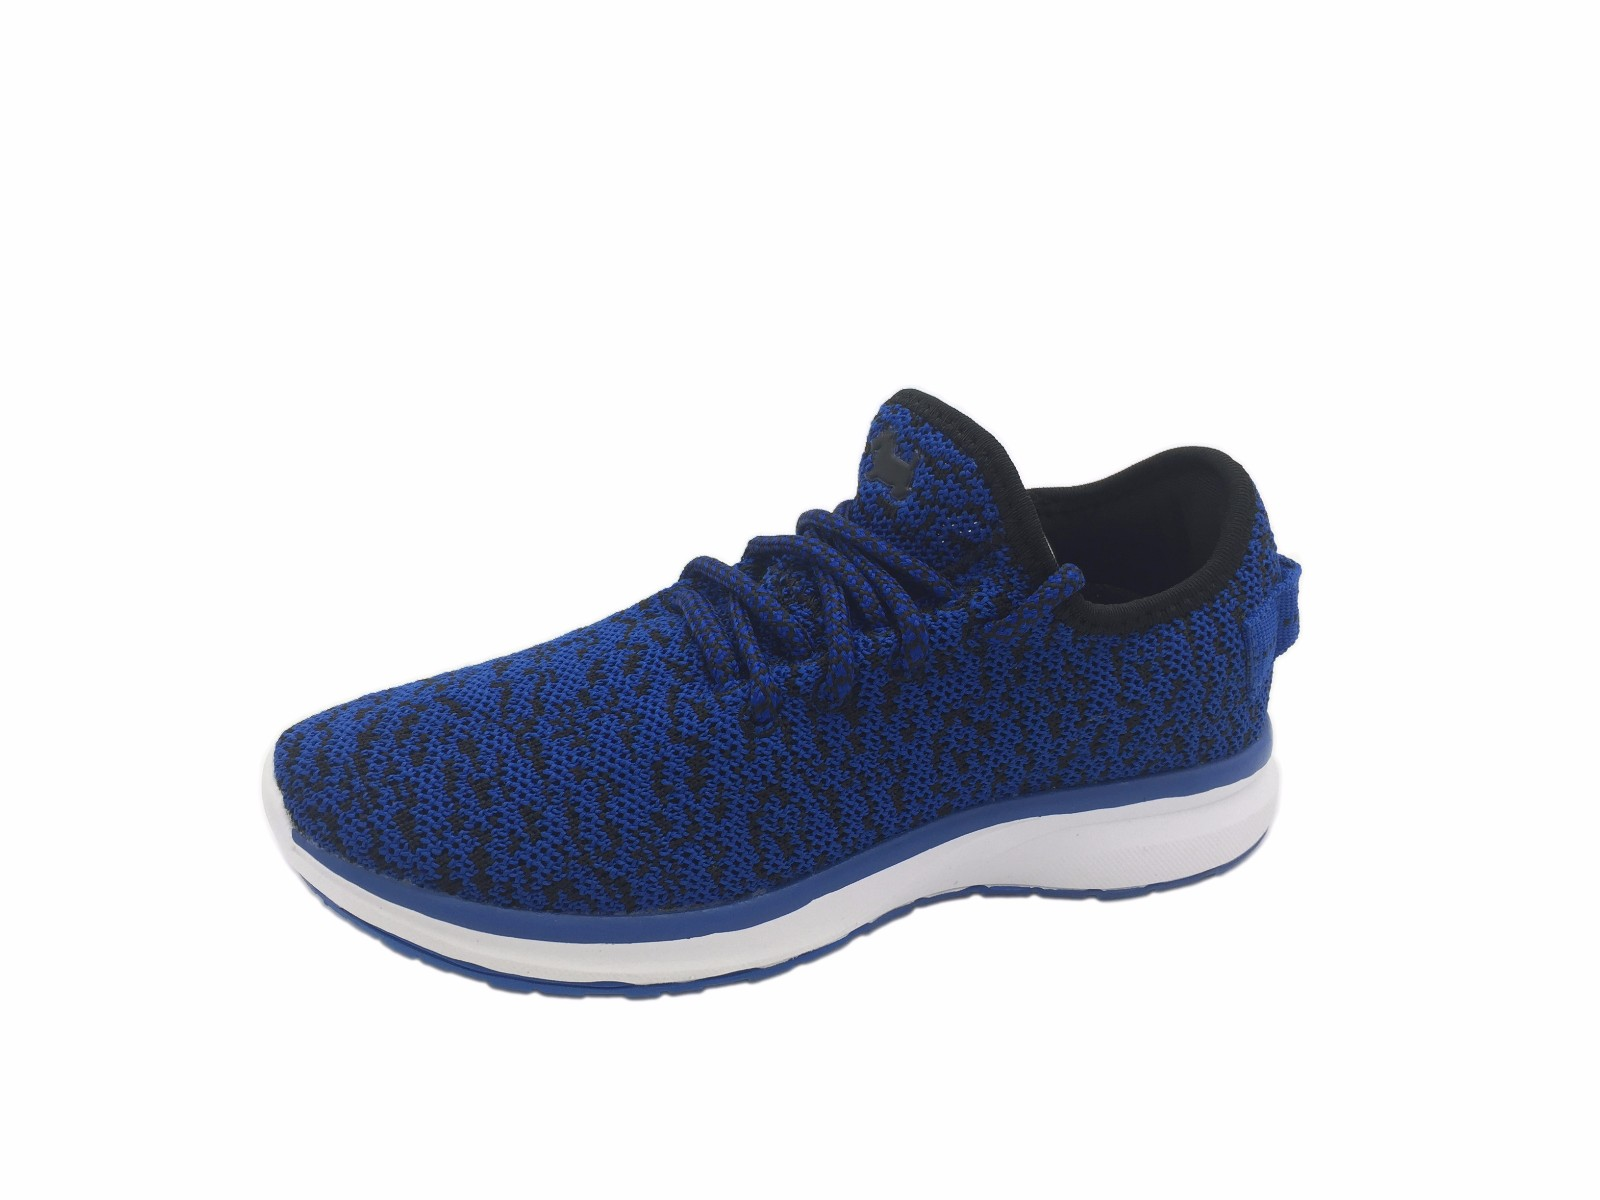 High quality Infant Flyknit Shoes Running Shoes Quotes,China Infant Flyknit Shoes Running Shoes Factory,Infant Flyknit Shoes Running Shoes Purchasing